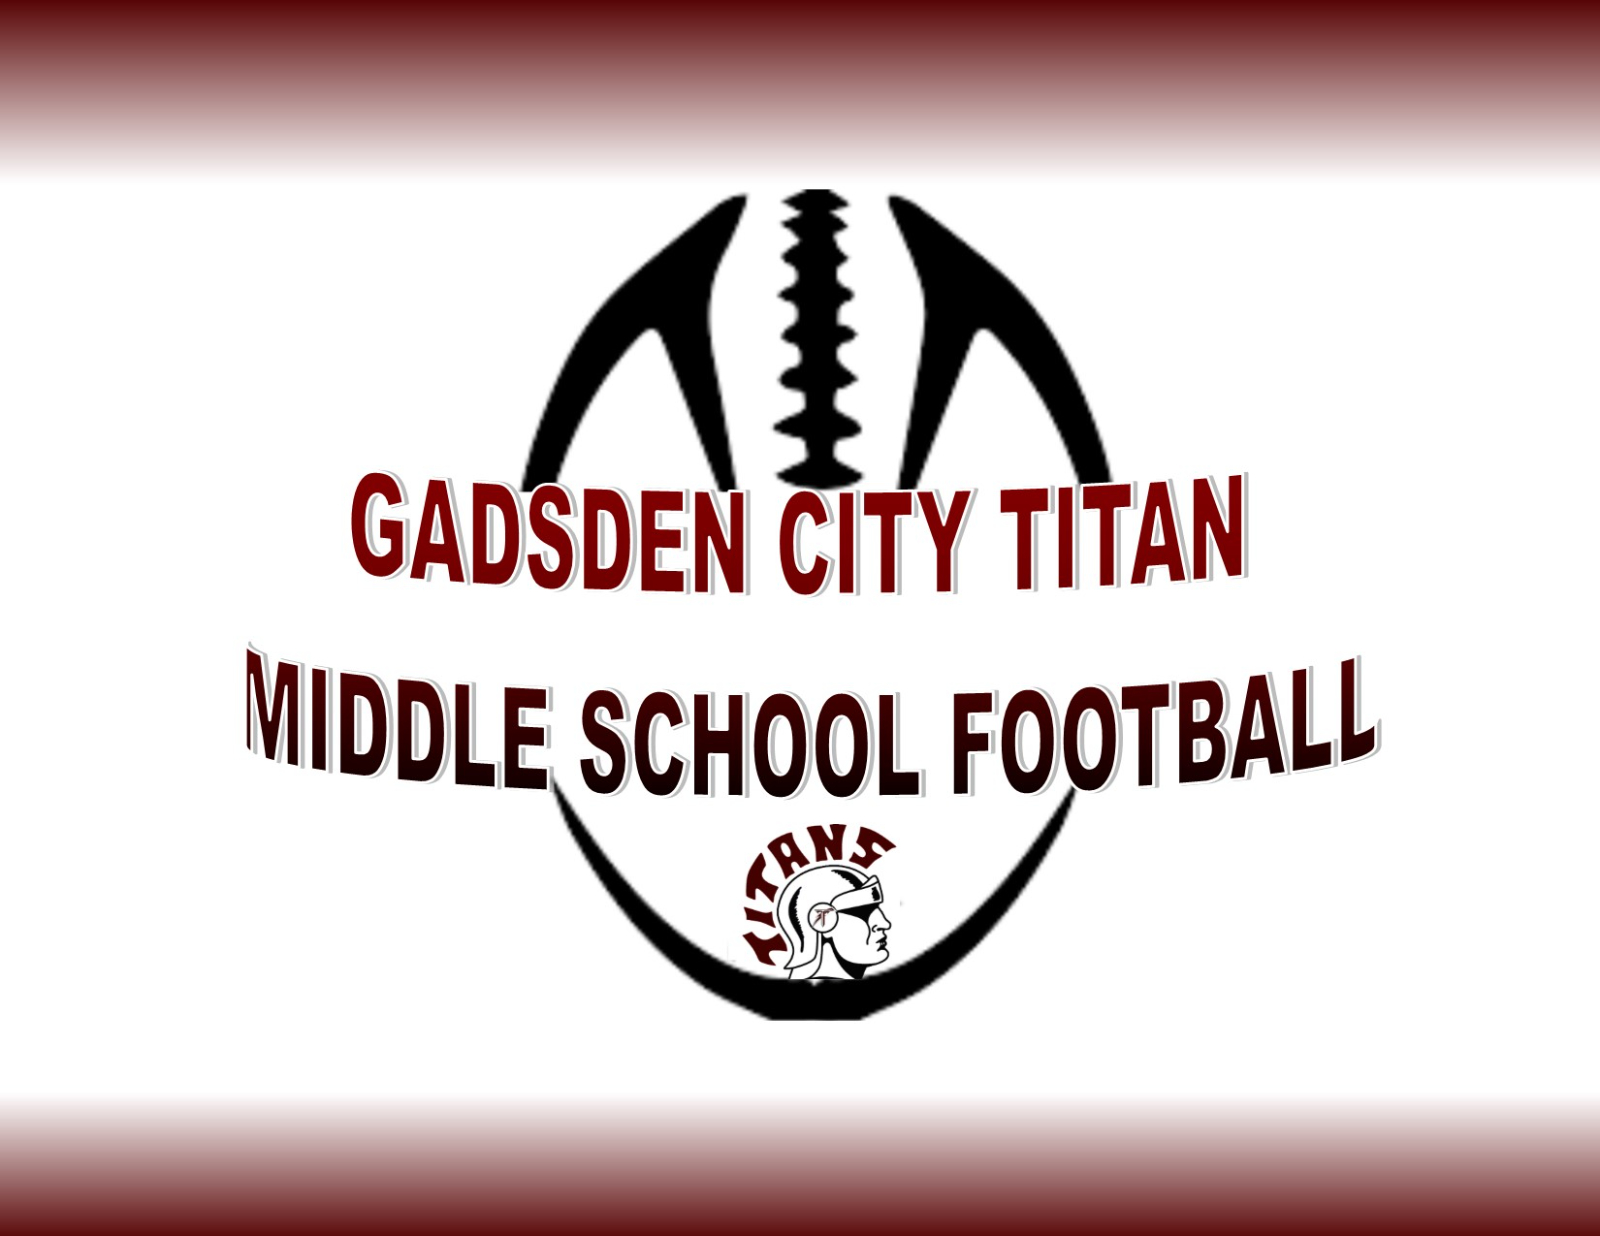 Gadsden City Titan Middle School Football Interest Survey (current 6th and 7th graders)